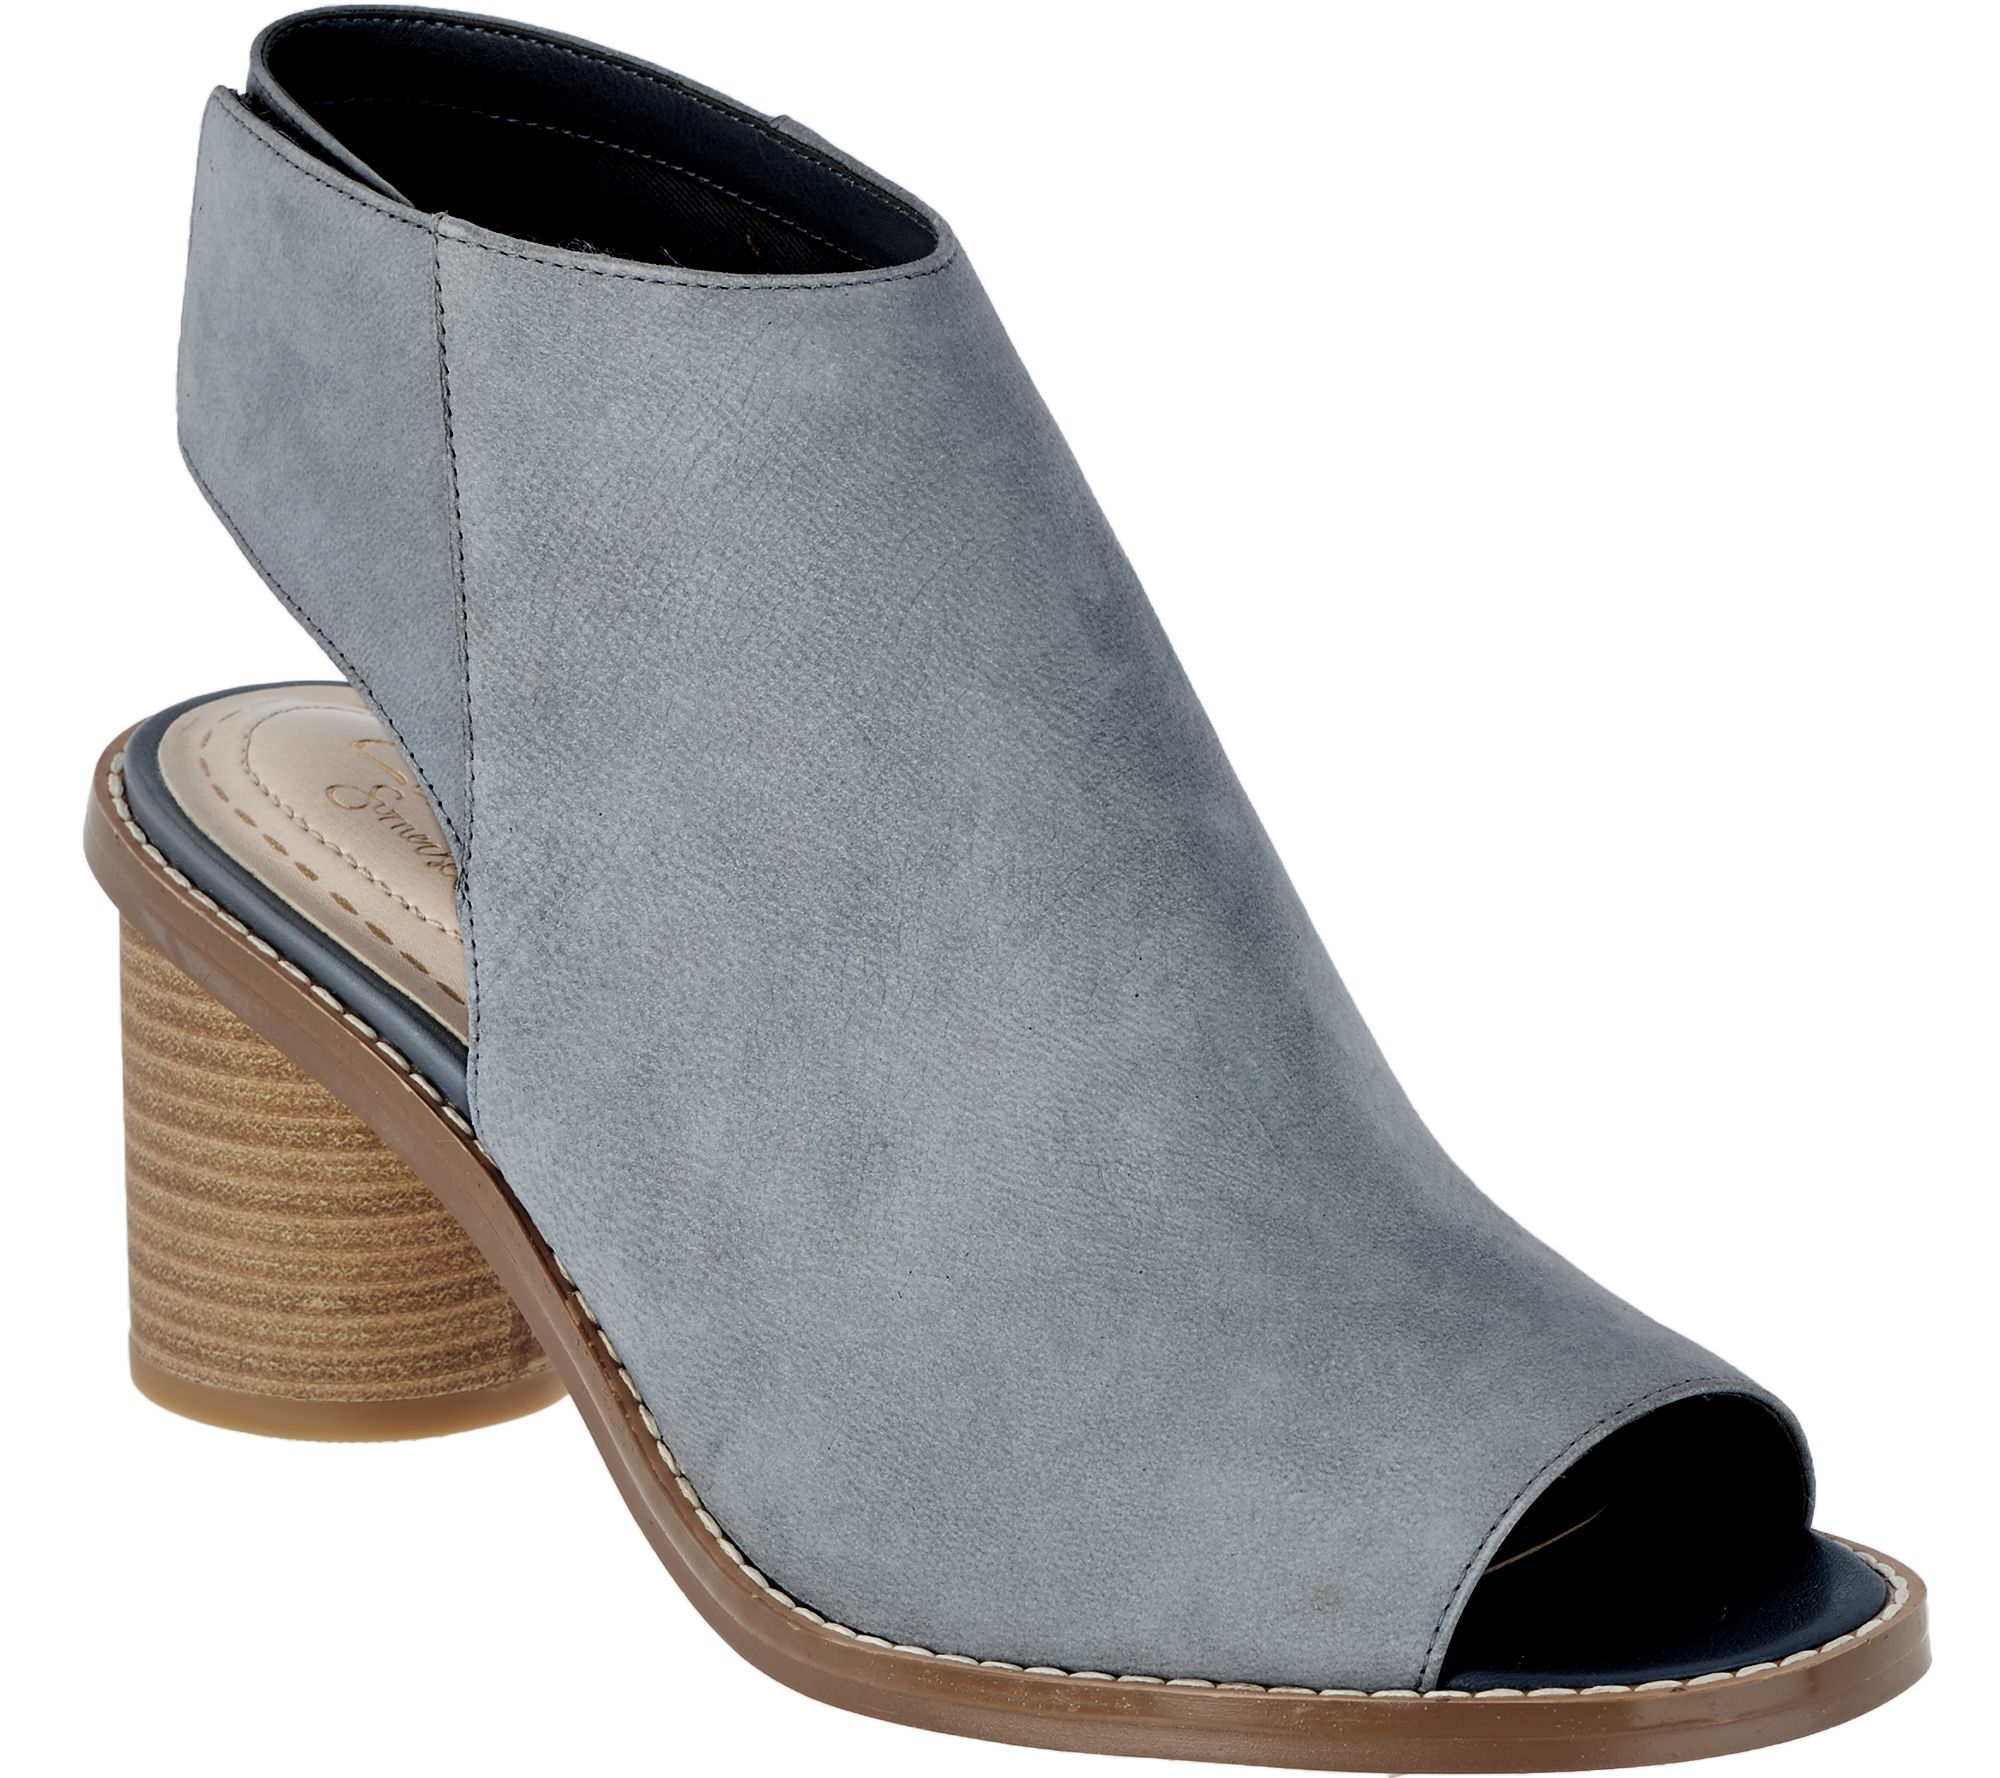 1e476cdf461 Clarks Somerset Suede Peep-toe Stacked Heel Booties - Glacier Charm - Page  1 — QVC.com